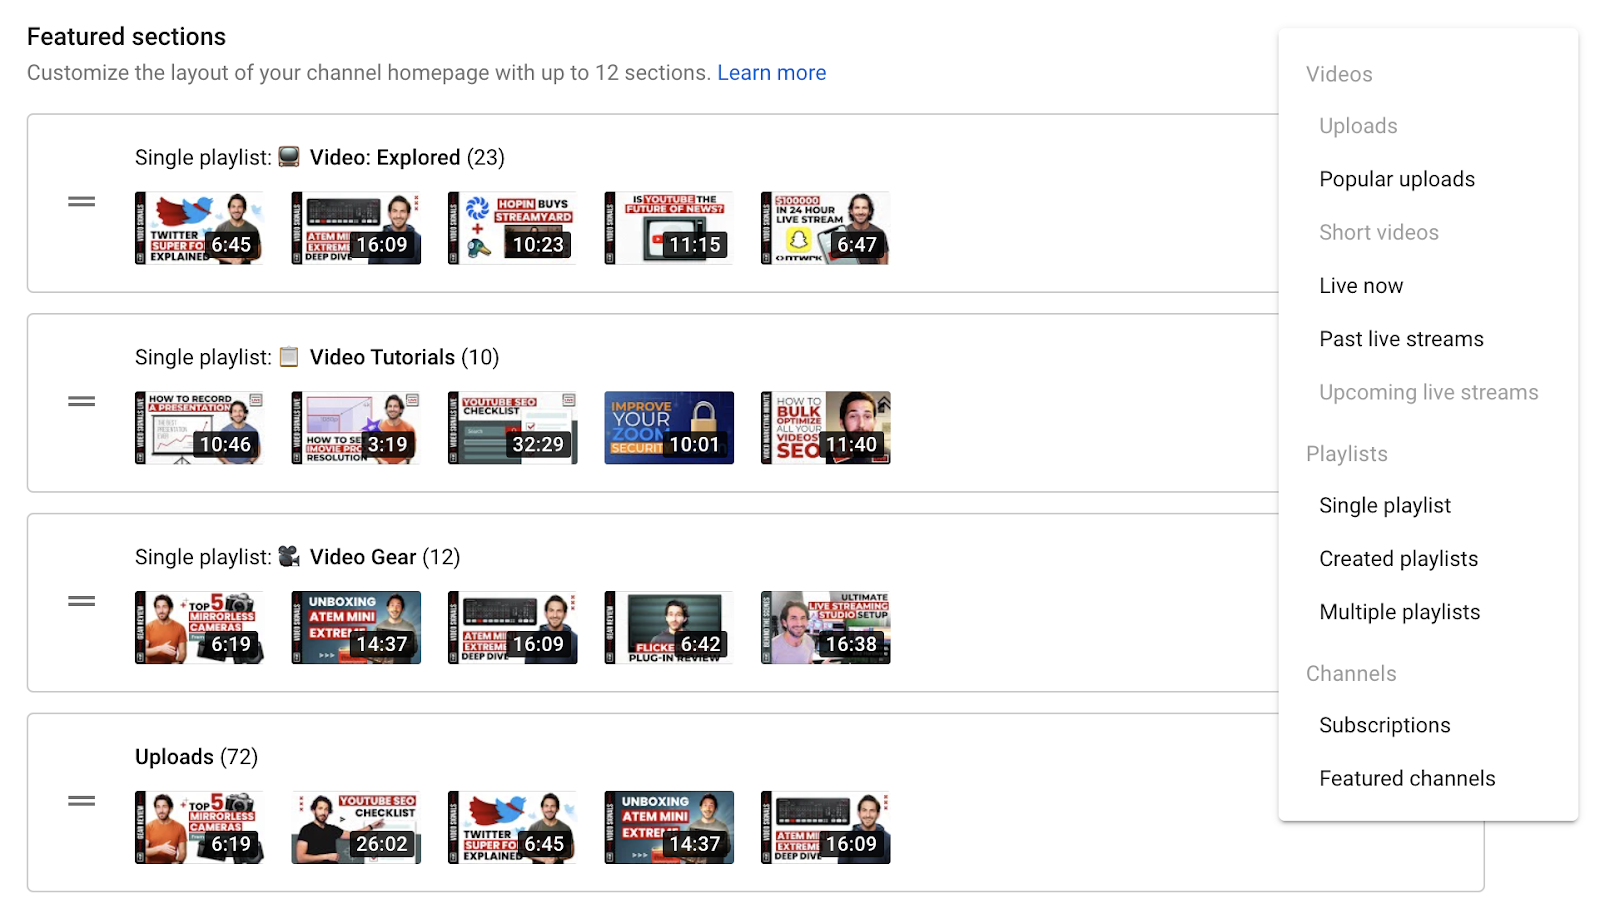 Dropdown with all the options for YouTube channel featured sections